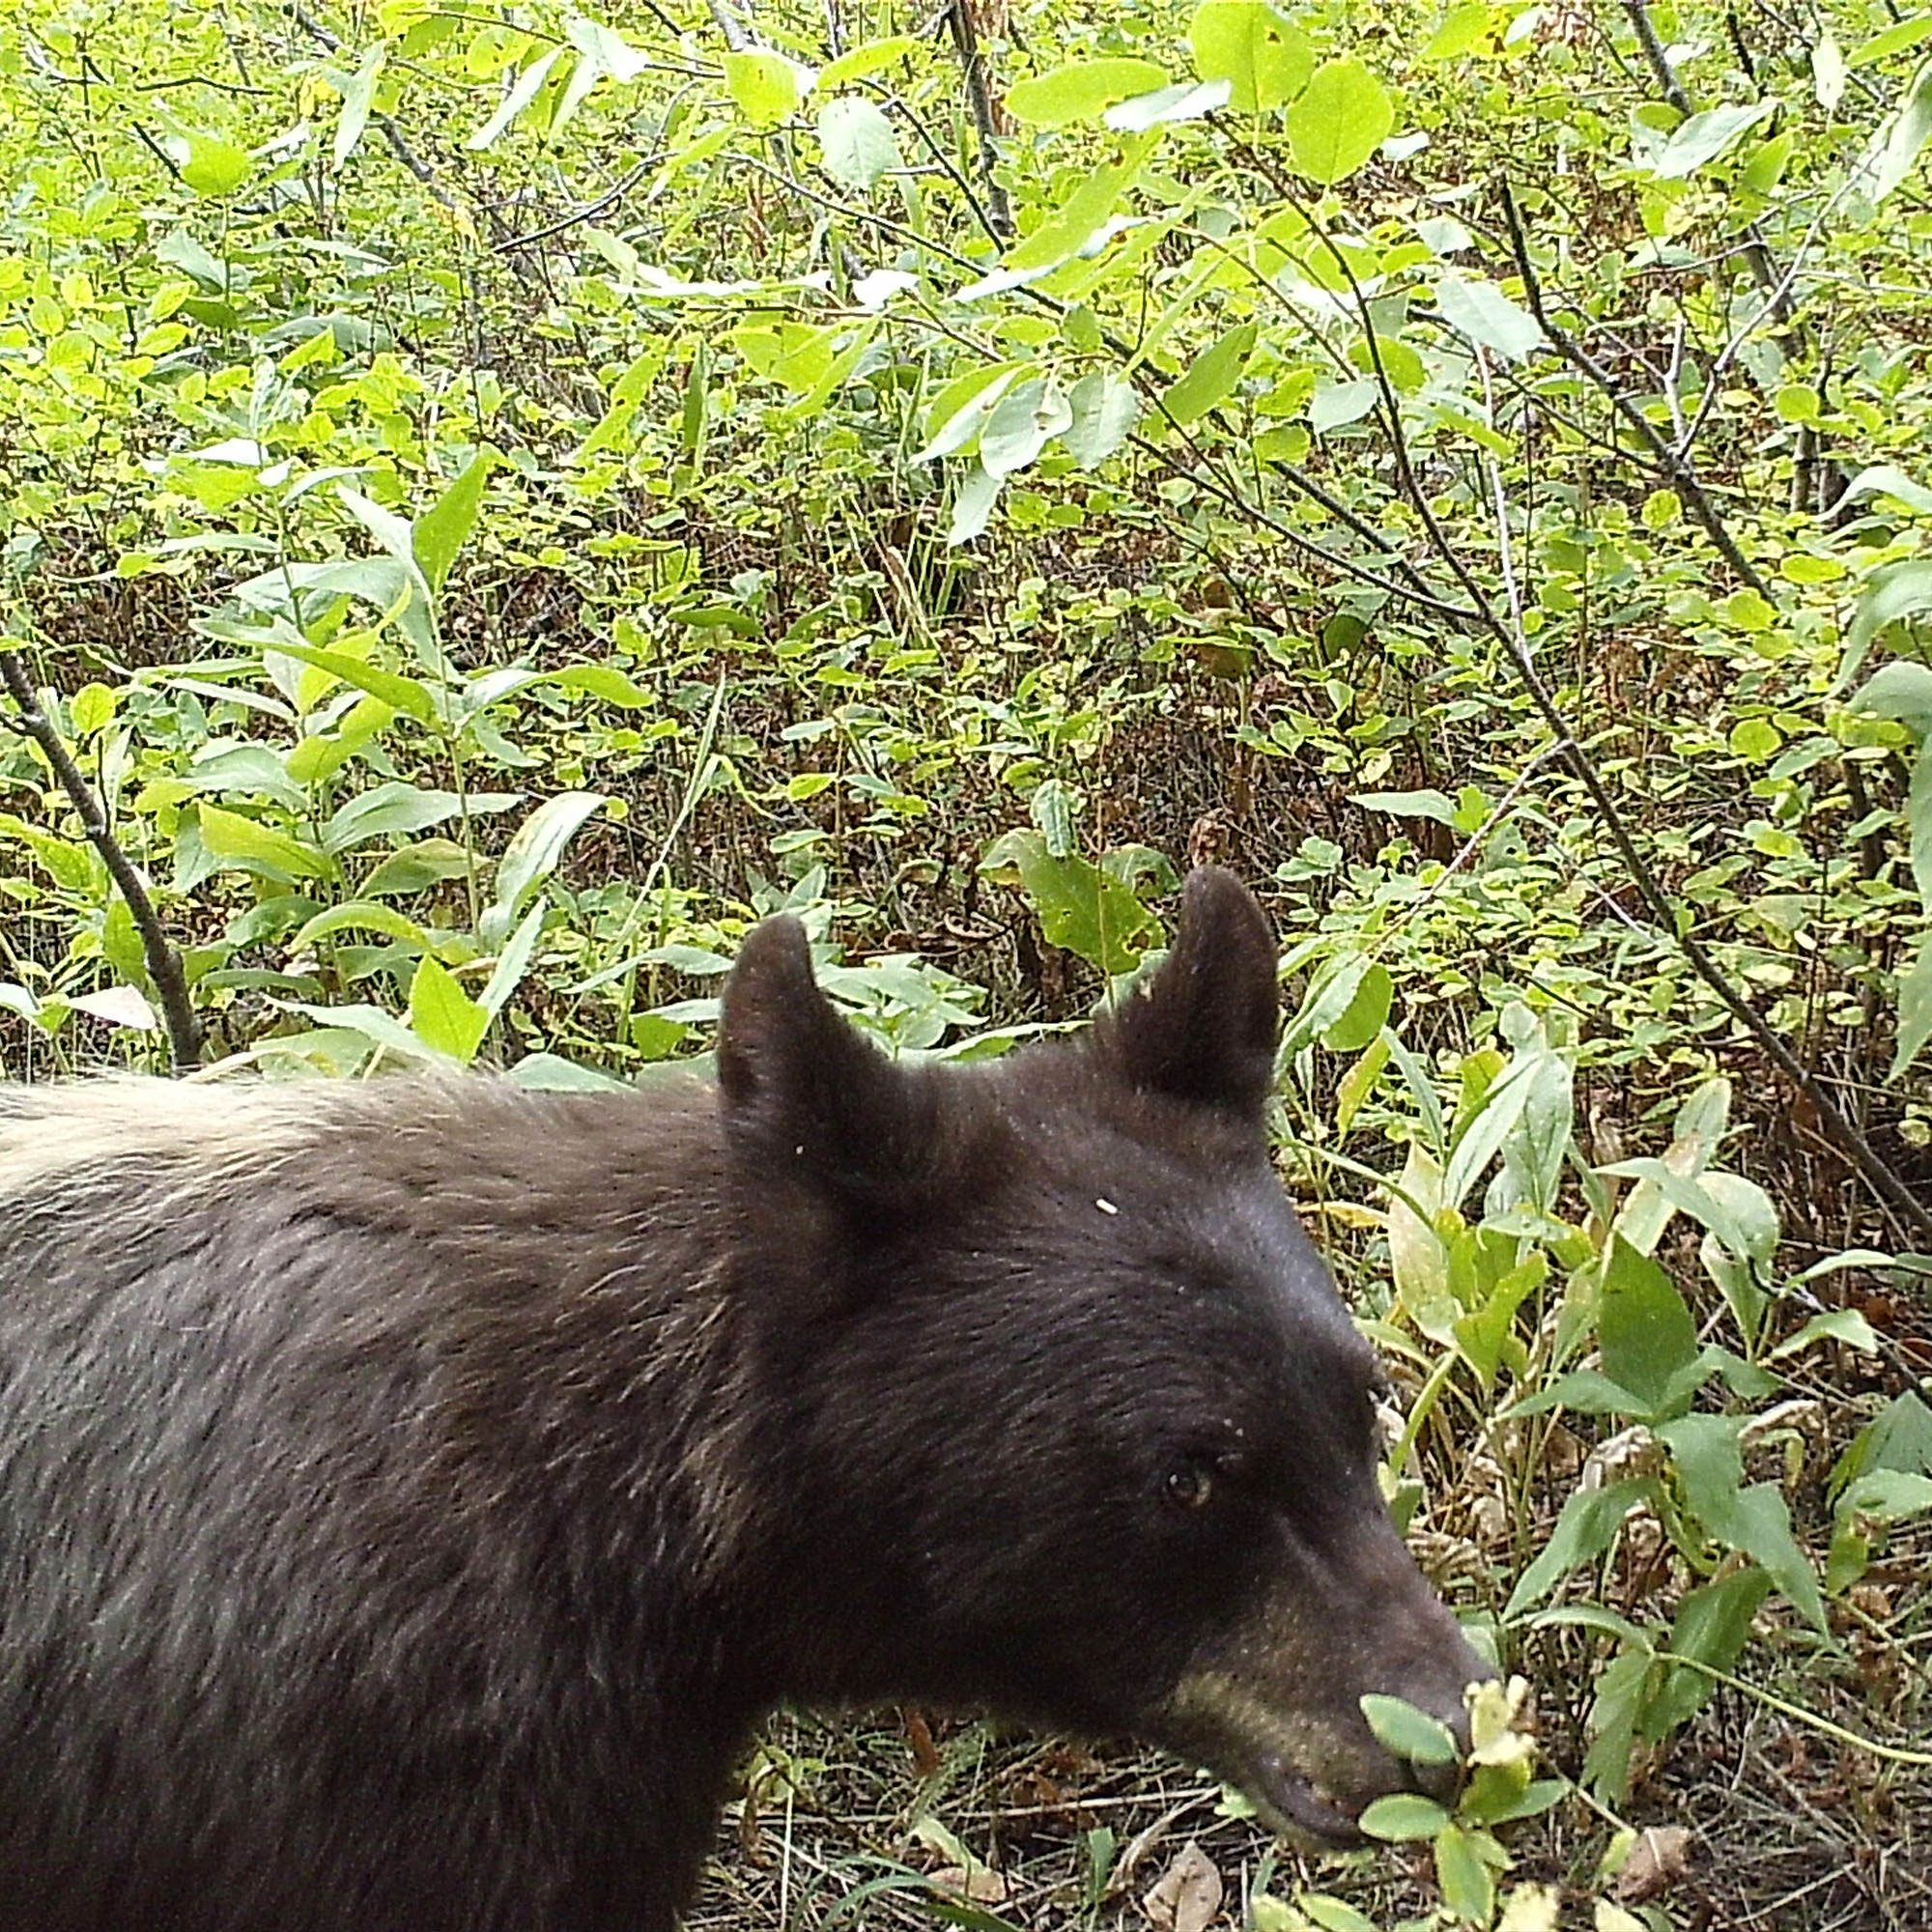 A black bear walks in front of a trail camera triggering a photo.